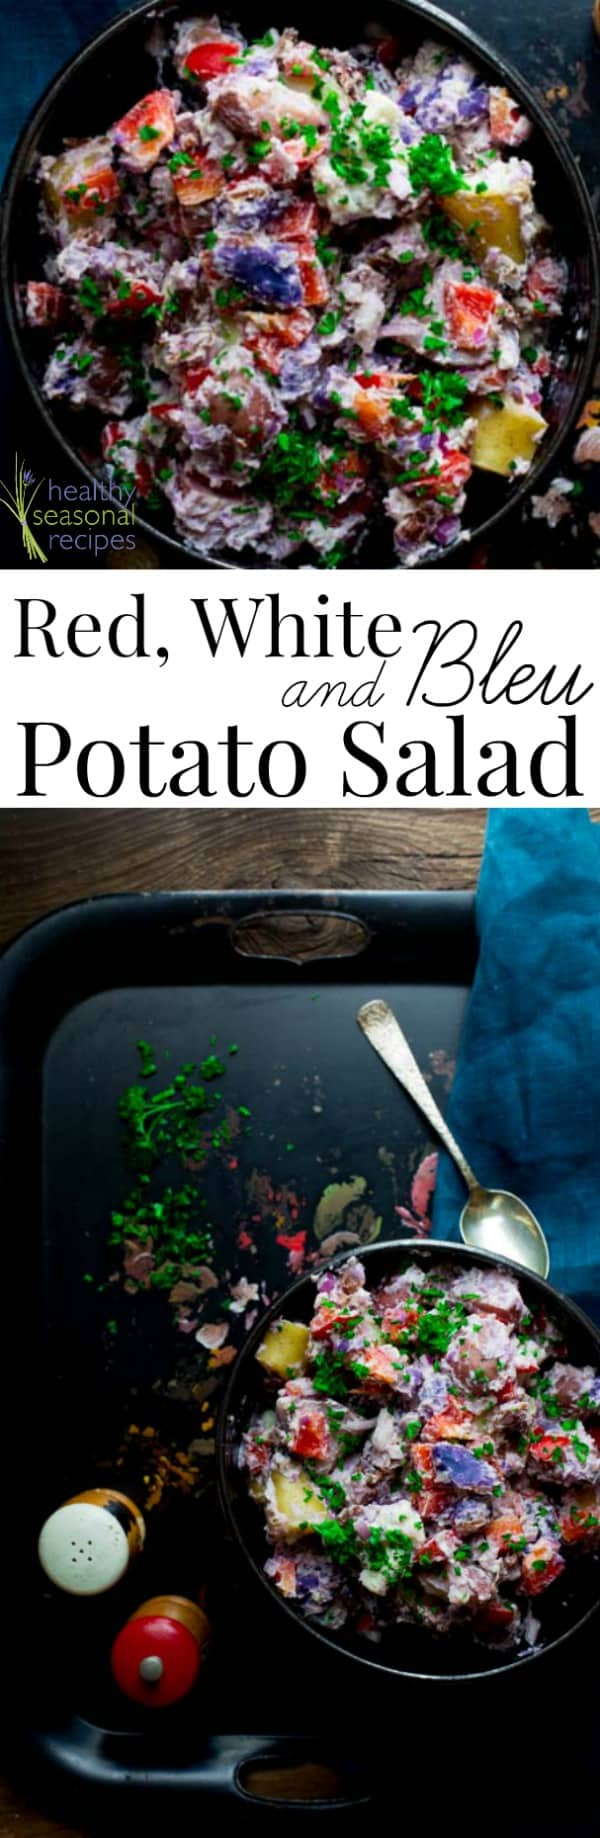 Red White and Blue Potato Salad (made with Bleu Cheese, Bacon and Creamy Horseradish Greek Yogurt Dressing.) A patriotic side dish for Memorial Day or the Fourth of July. Healthy Seasonal Recipes #potatosalad #fourthofjuly #redwhiteandblue #recipe #healthy #glutenfree